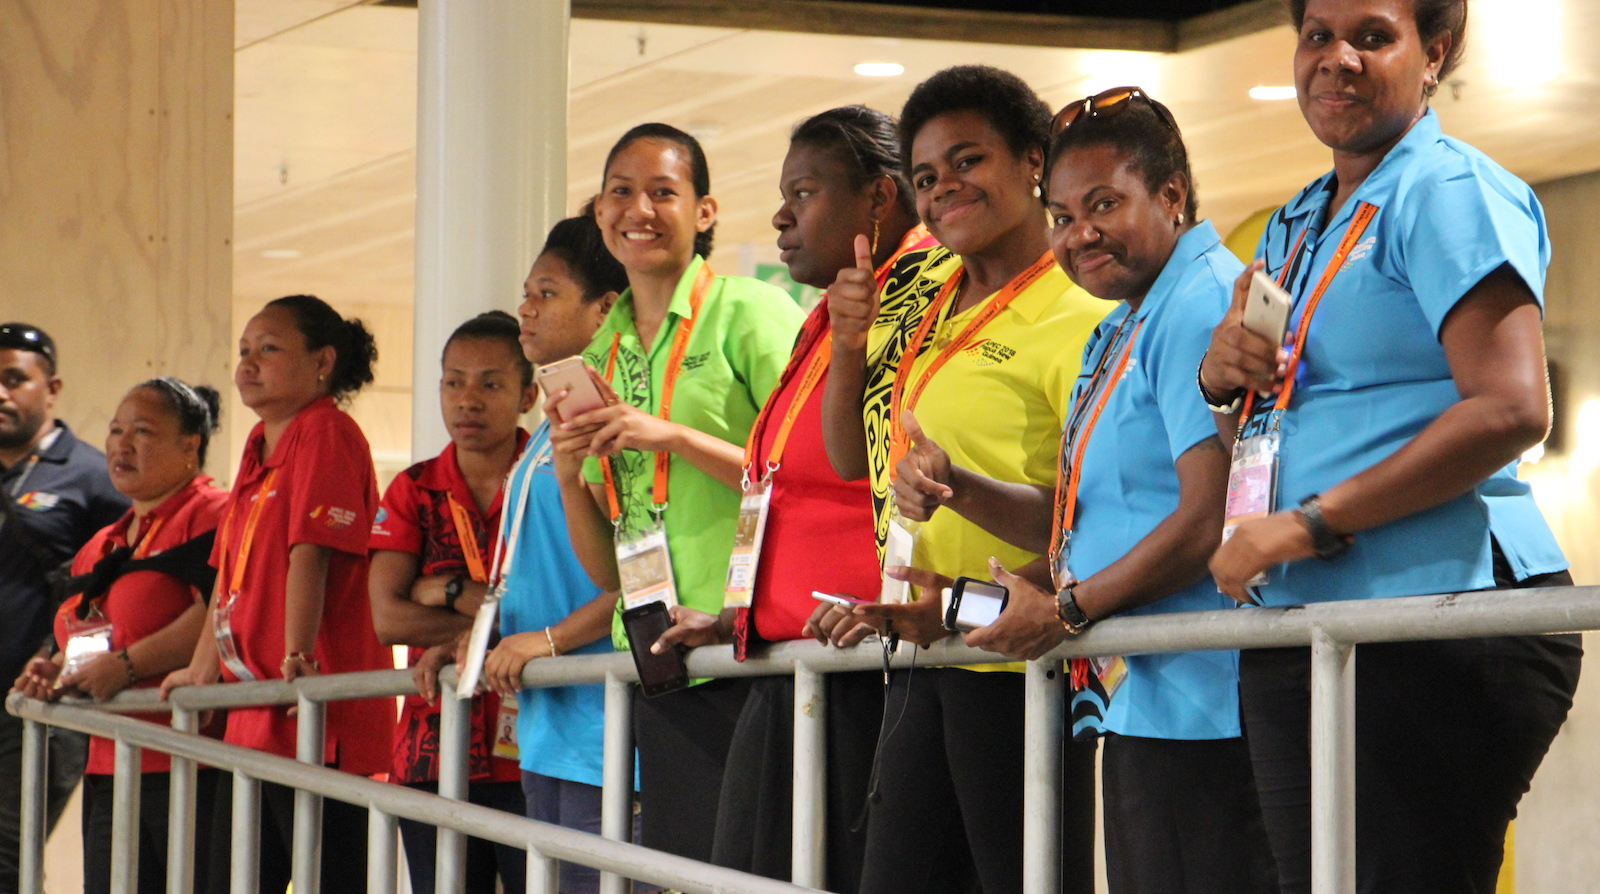 Conflict, romance, and PNG: the APEC Summit.